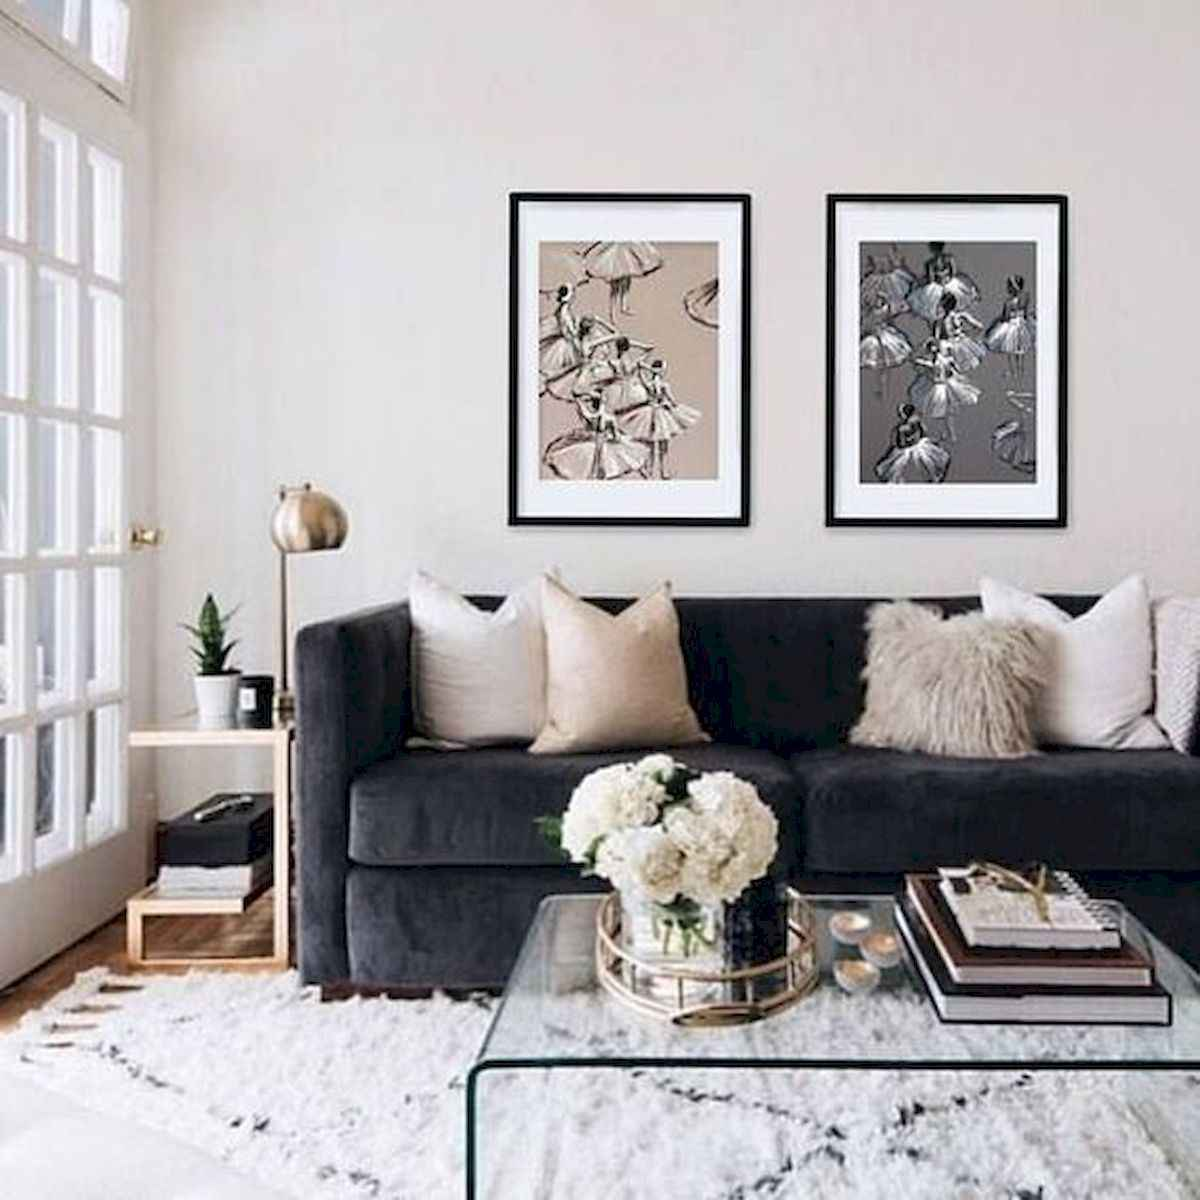 50+ Genius Small Living Room Decor Ideas And Remodel for Your First Apartment (43)